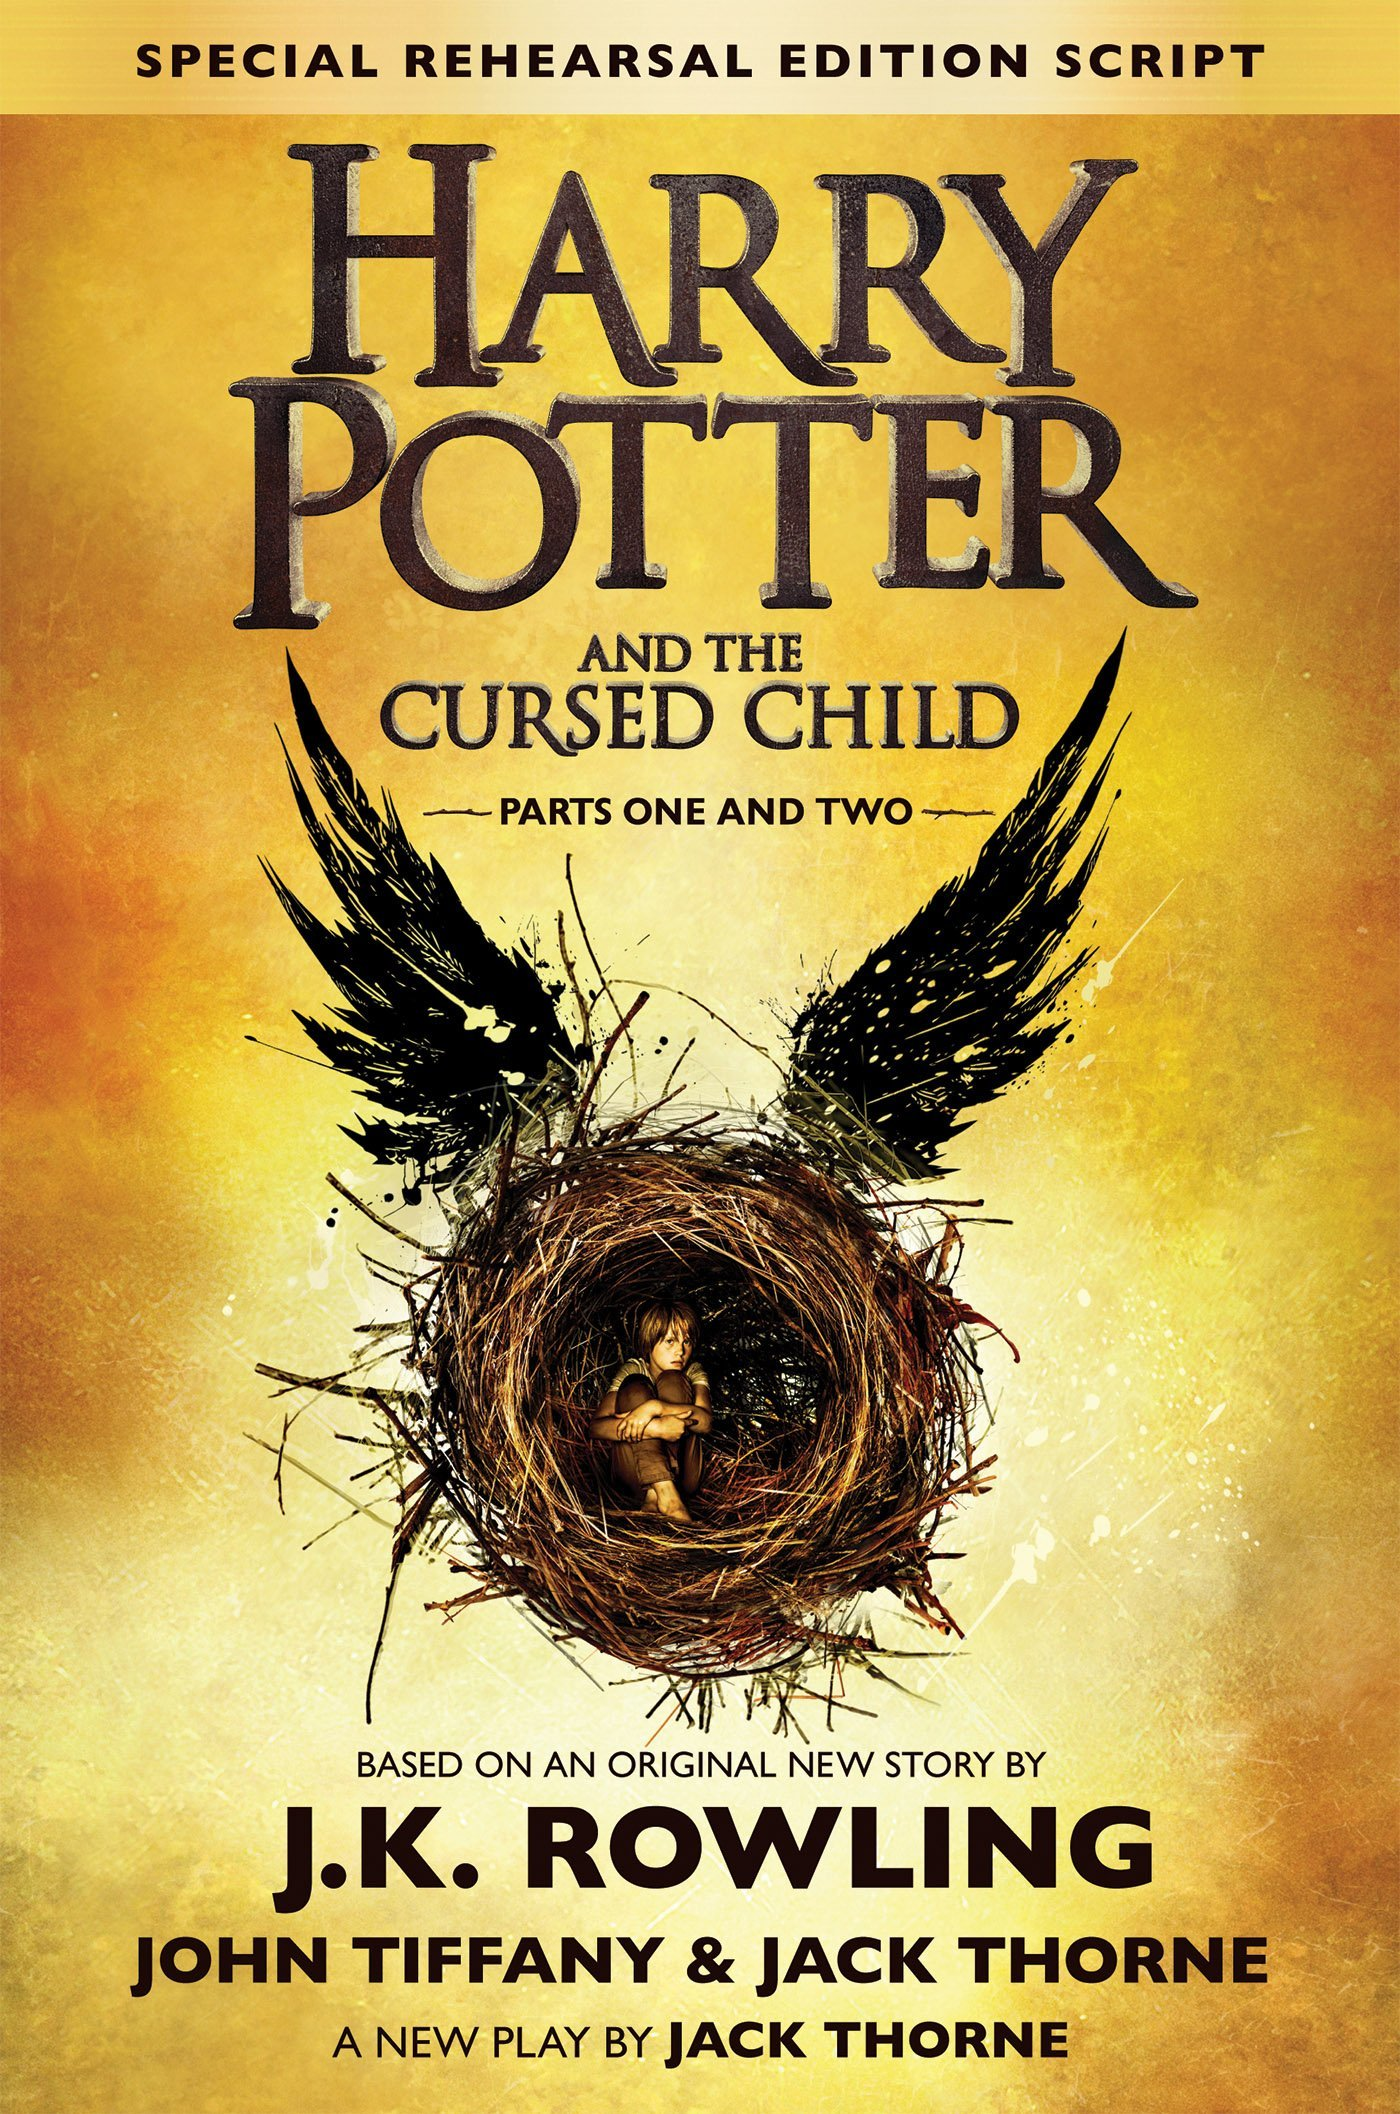 Harry Potter Book Excerpt : Excerpt from harry potter and the cursed child part i ii